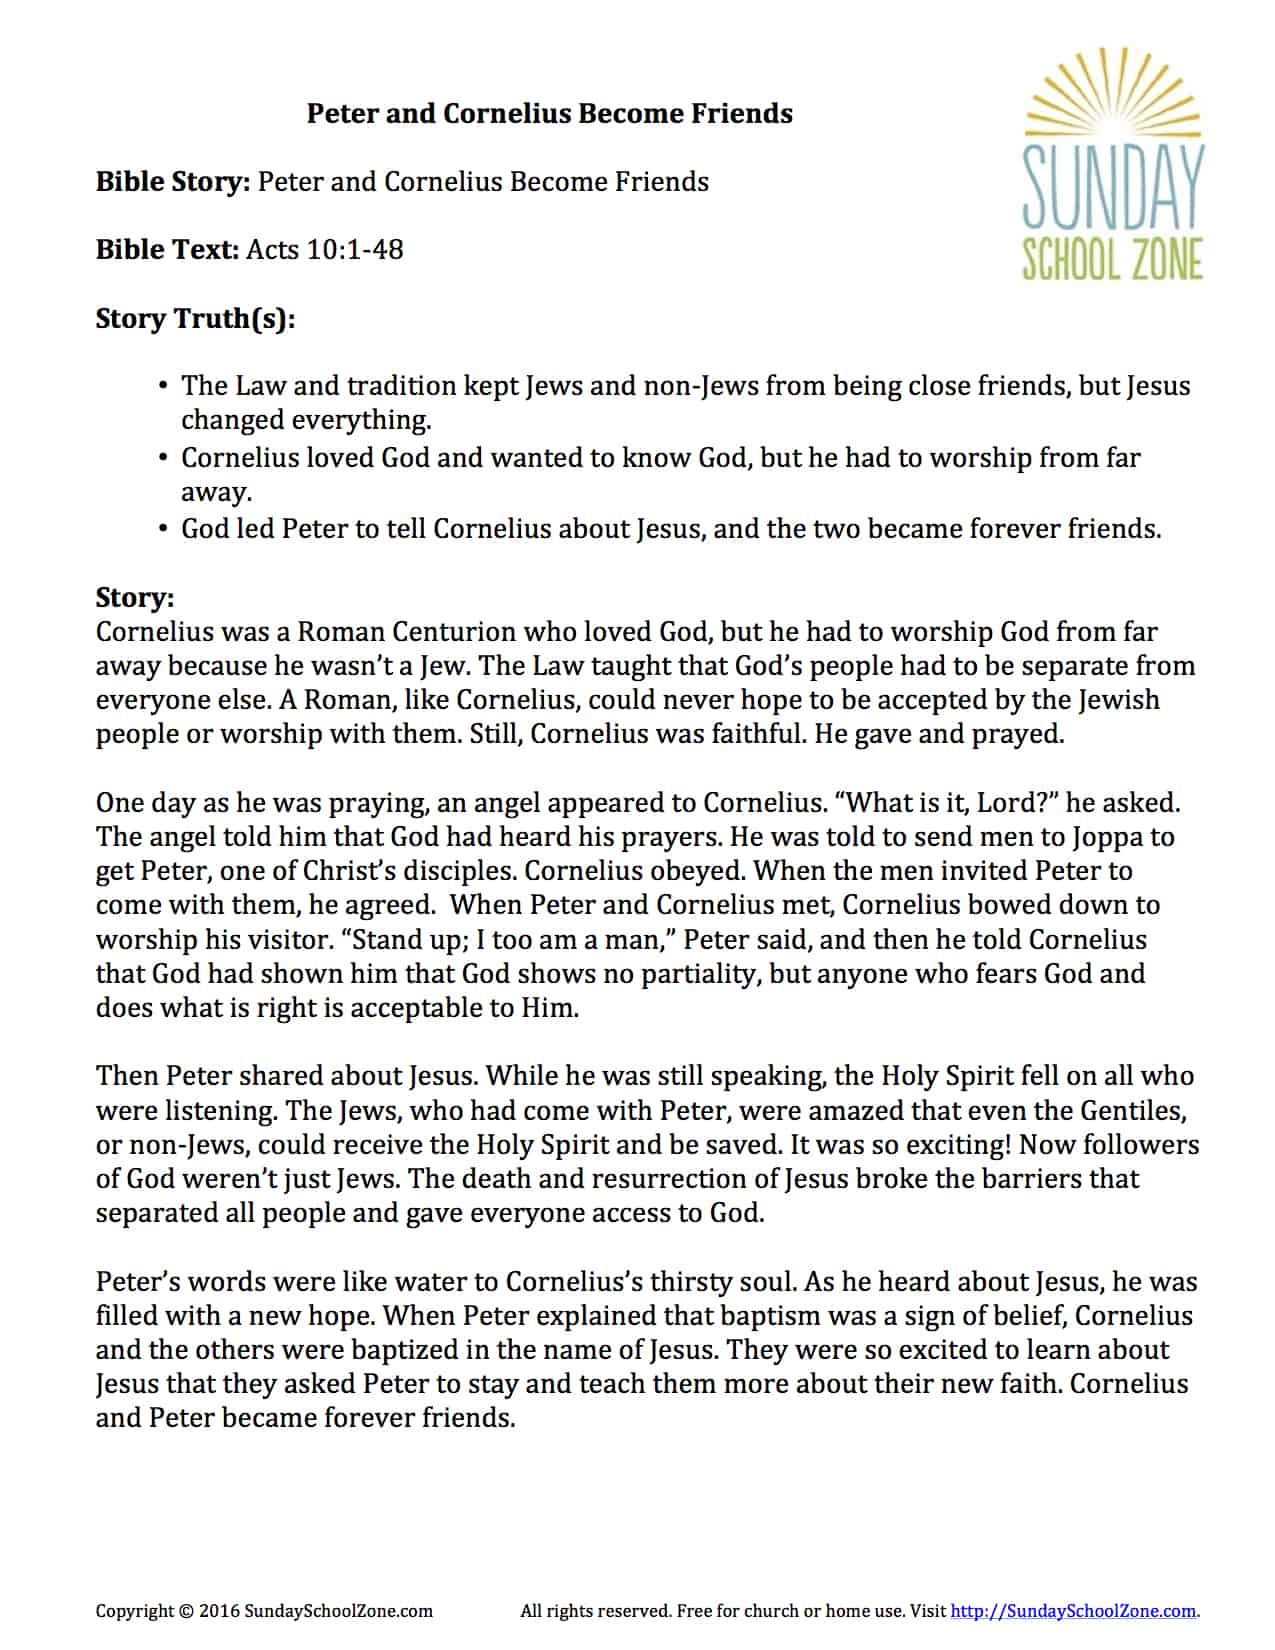 Peter And Cornelius Story Summary On Sunday School Zone